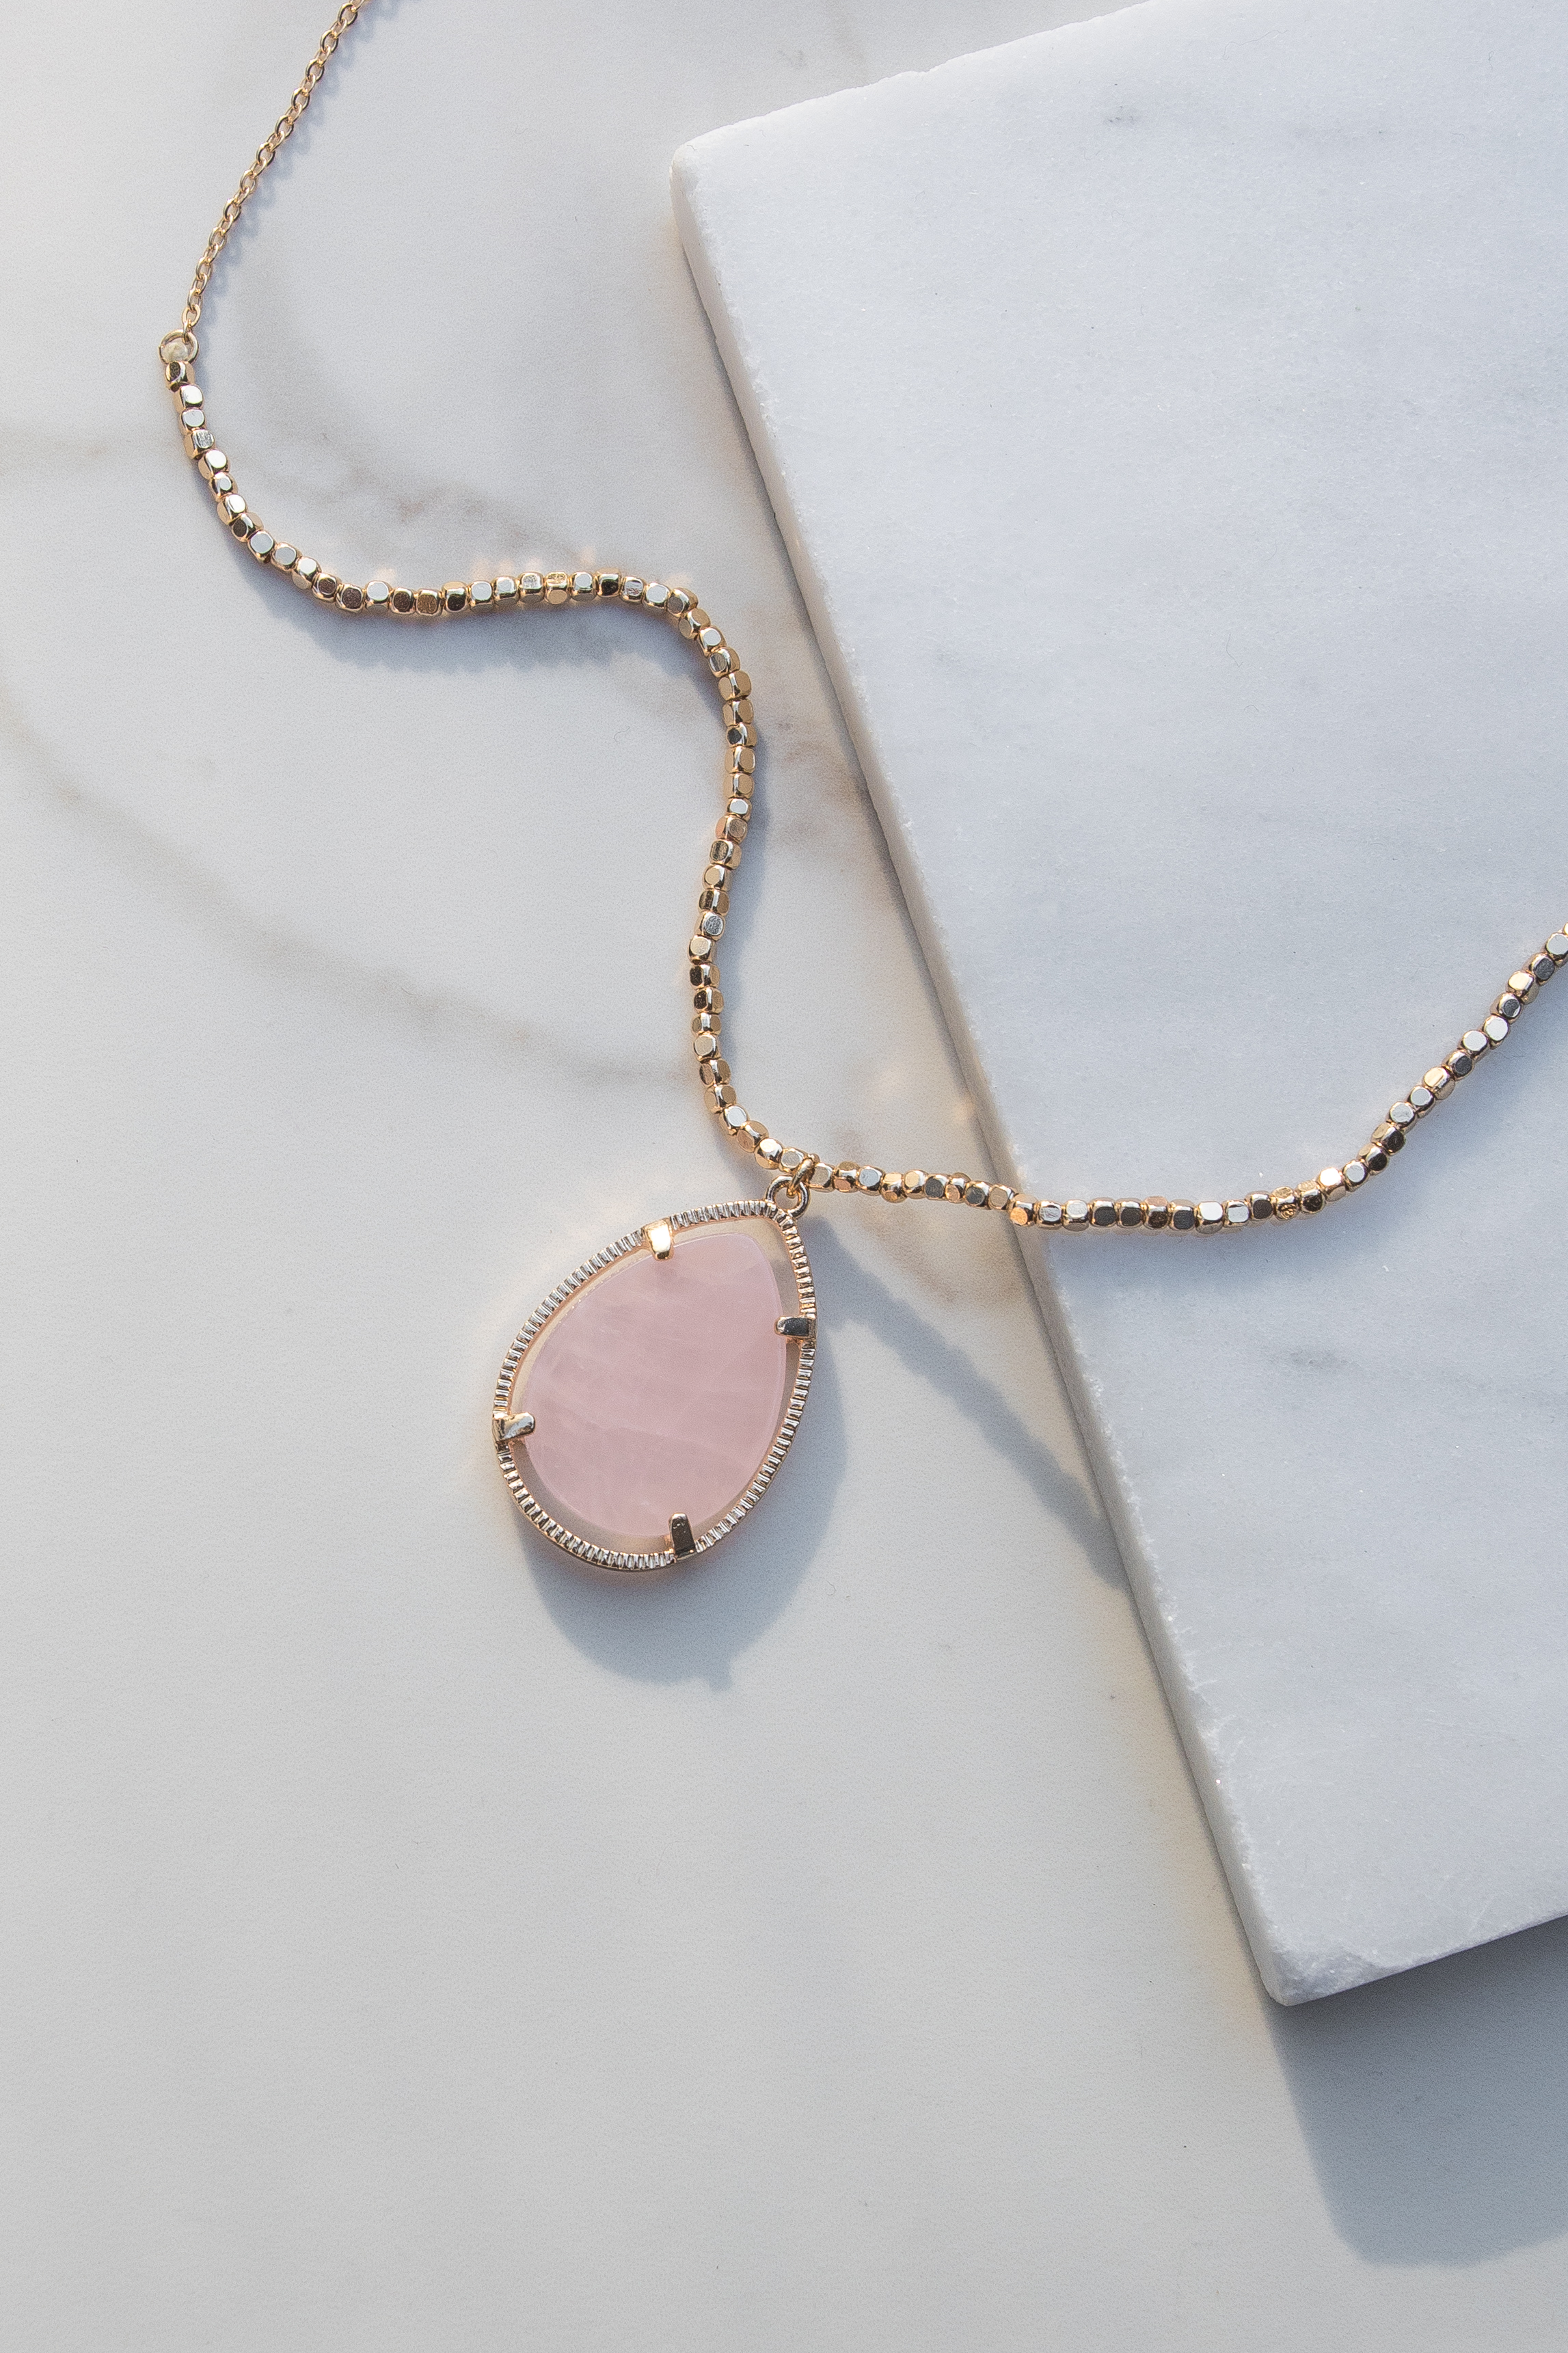 Gold Necklace with Beaded Details and Rose Quartz Pendant